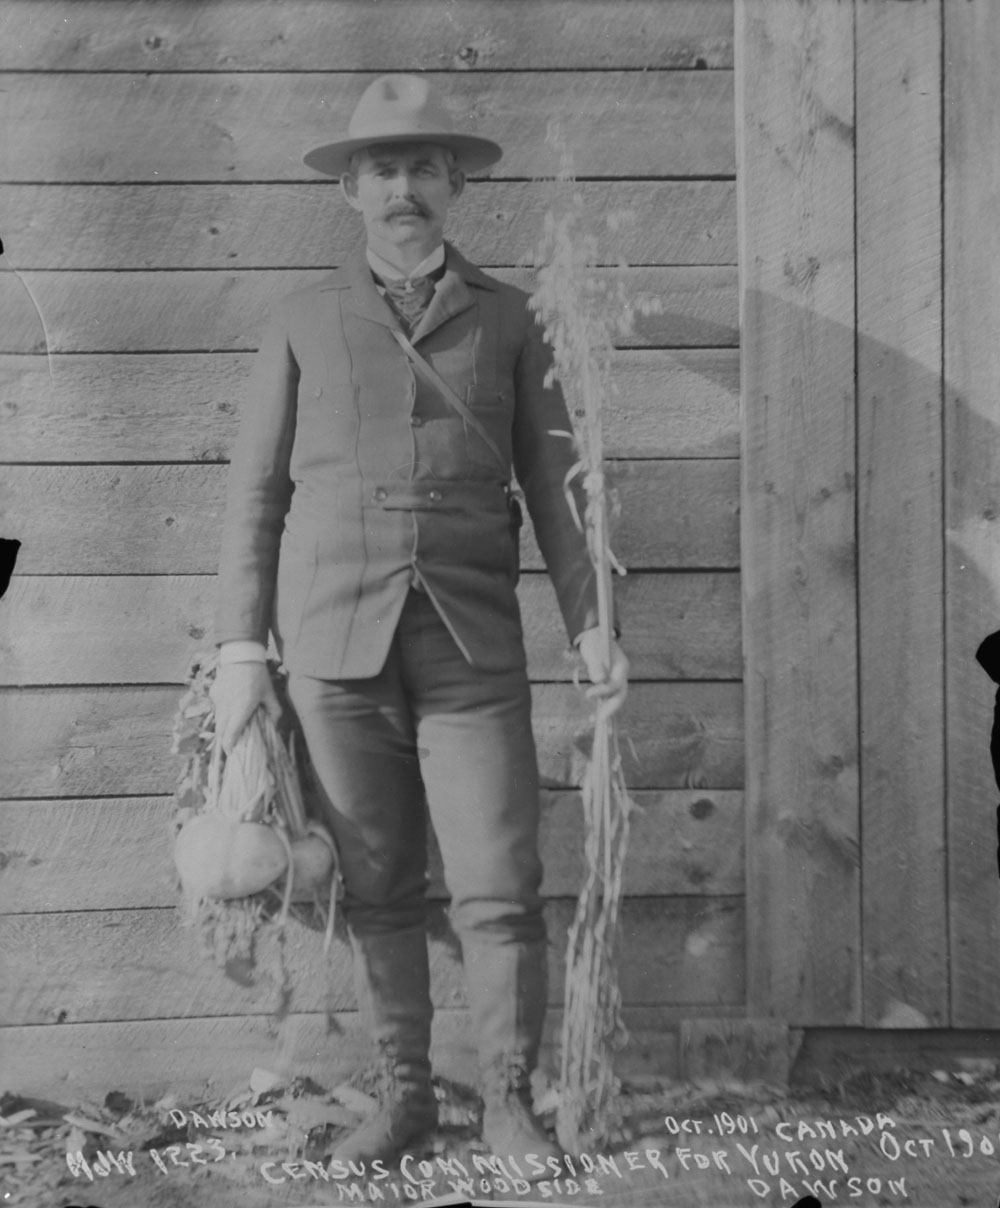 Major Henry Joseph Woodside, Census Commissioner, Yukon, 1901.